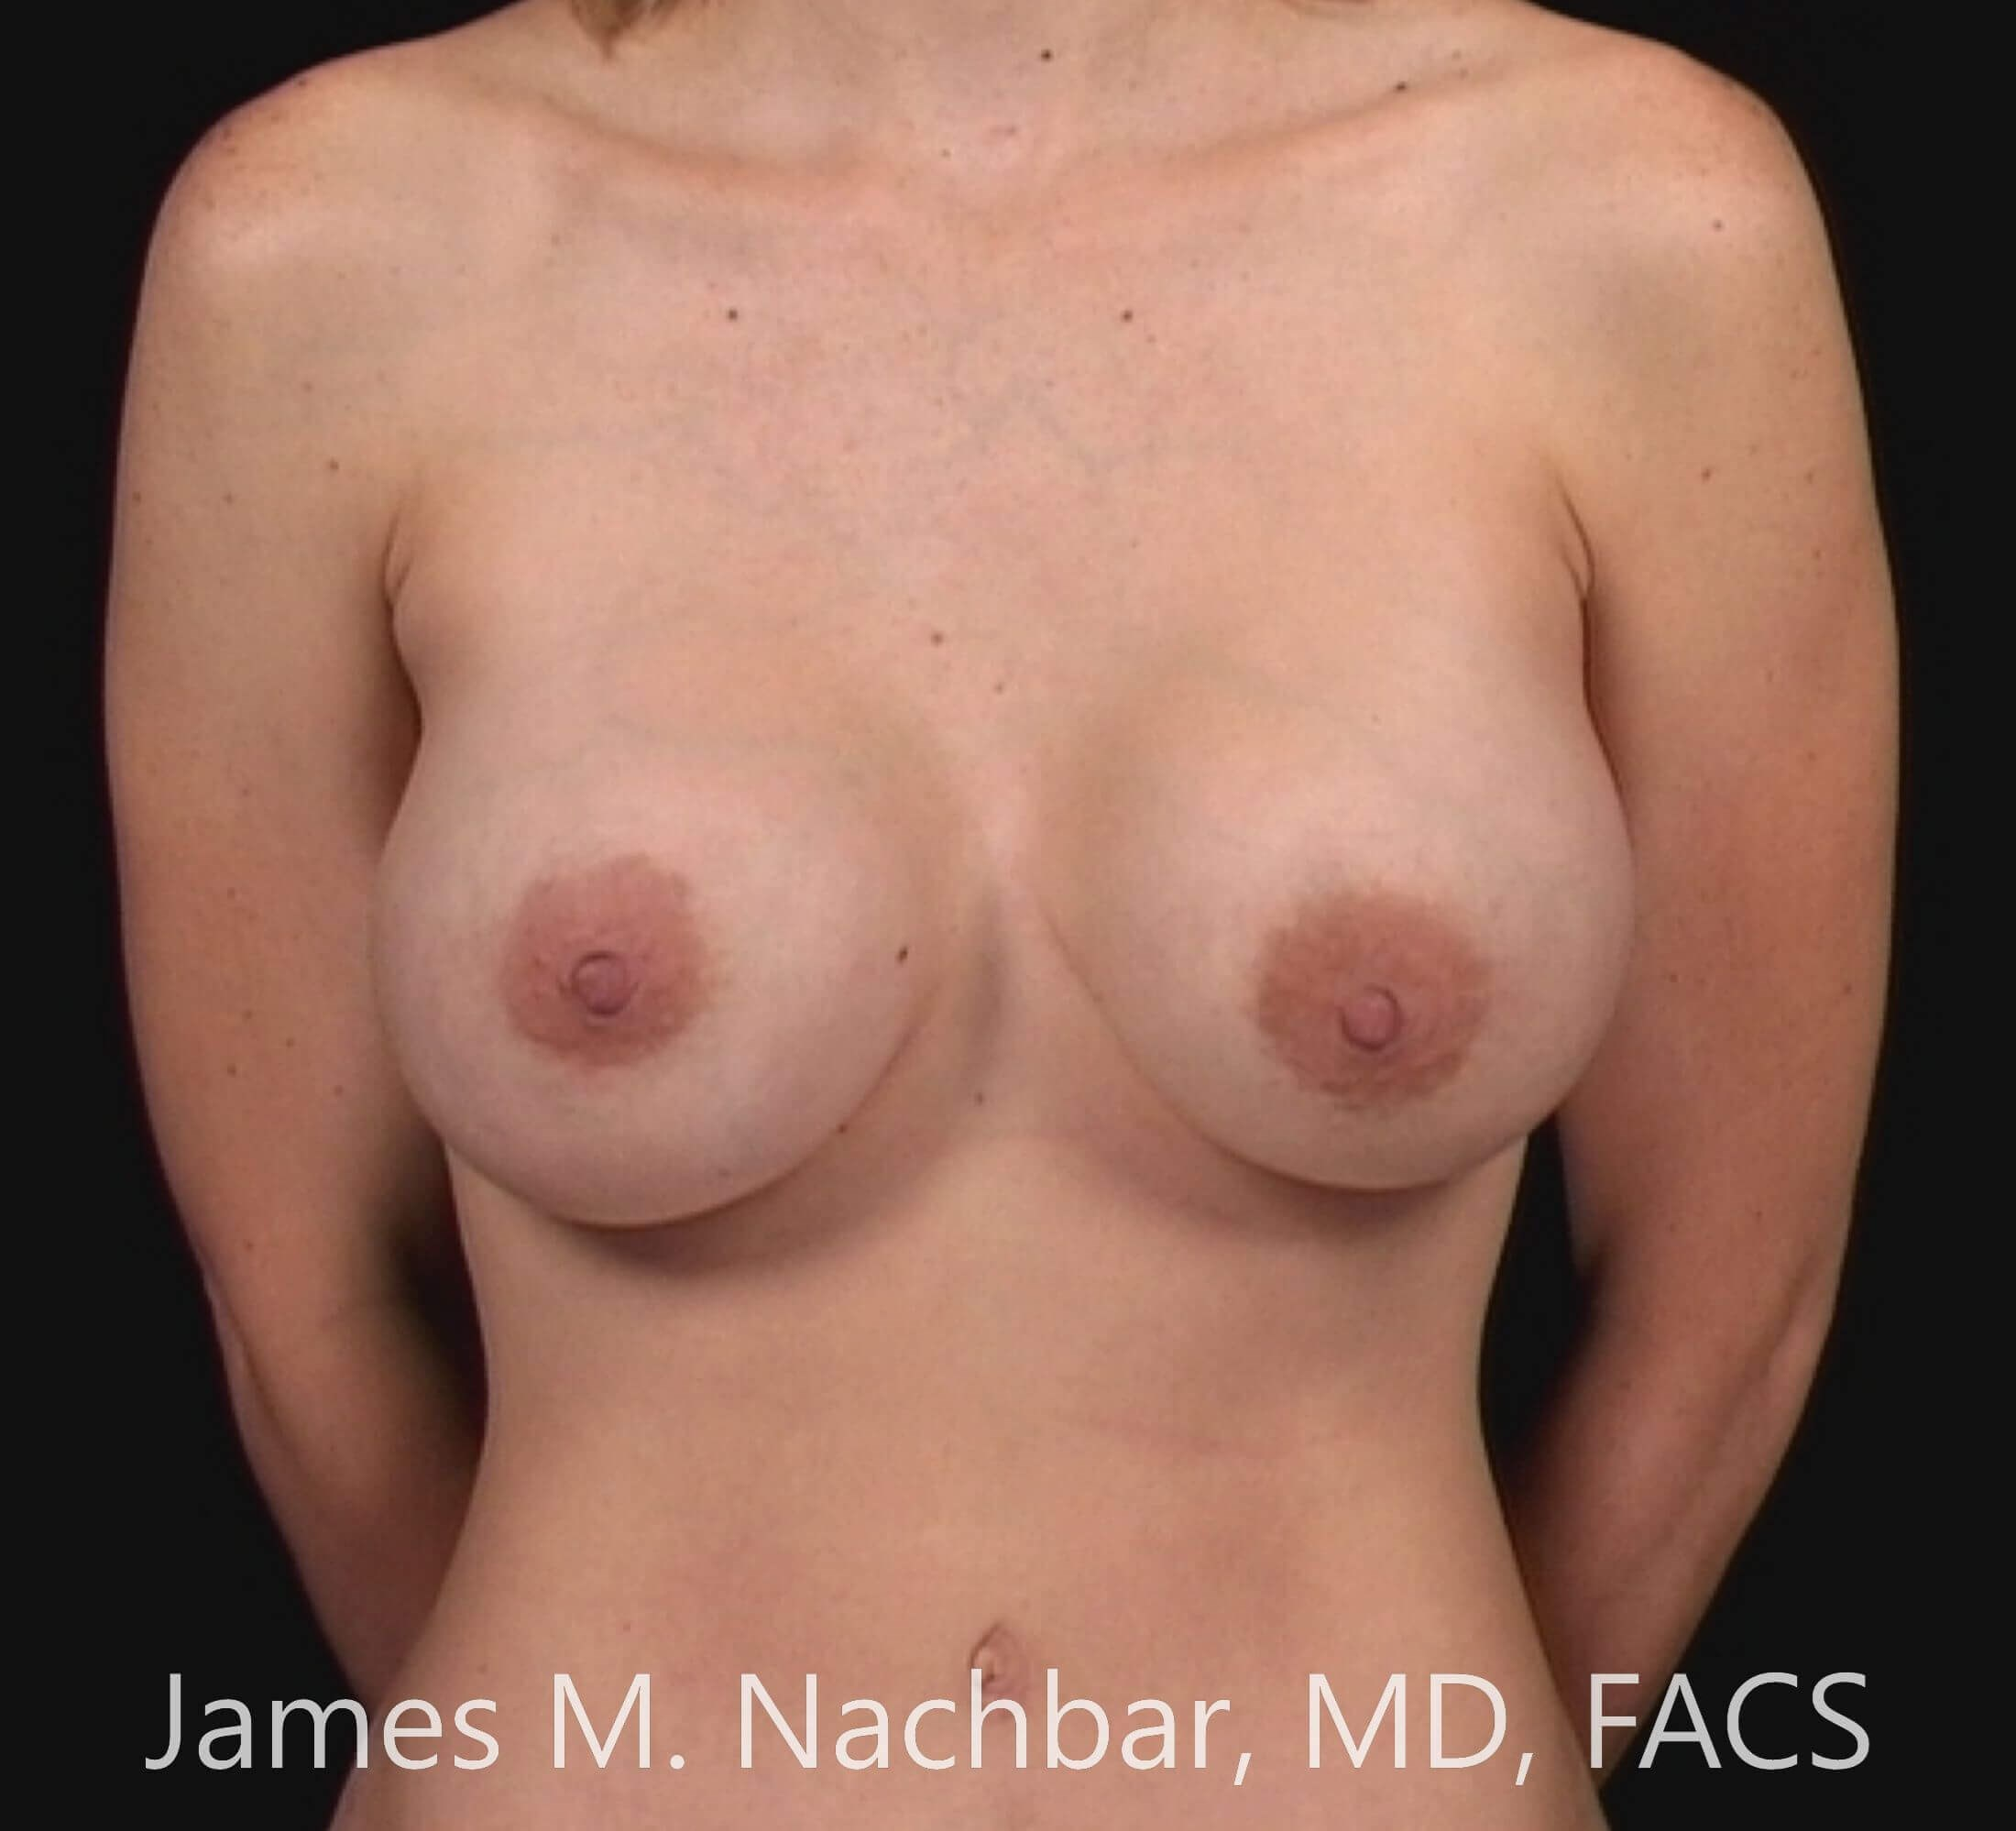 Front View Augmentation 6 Months After